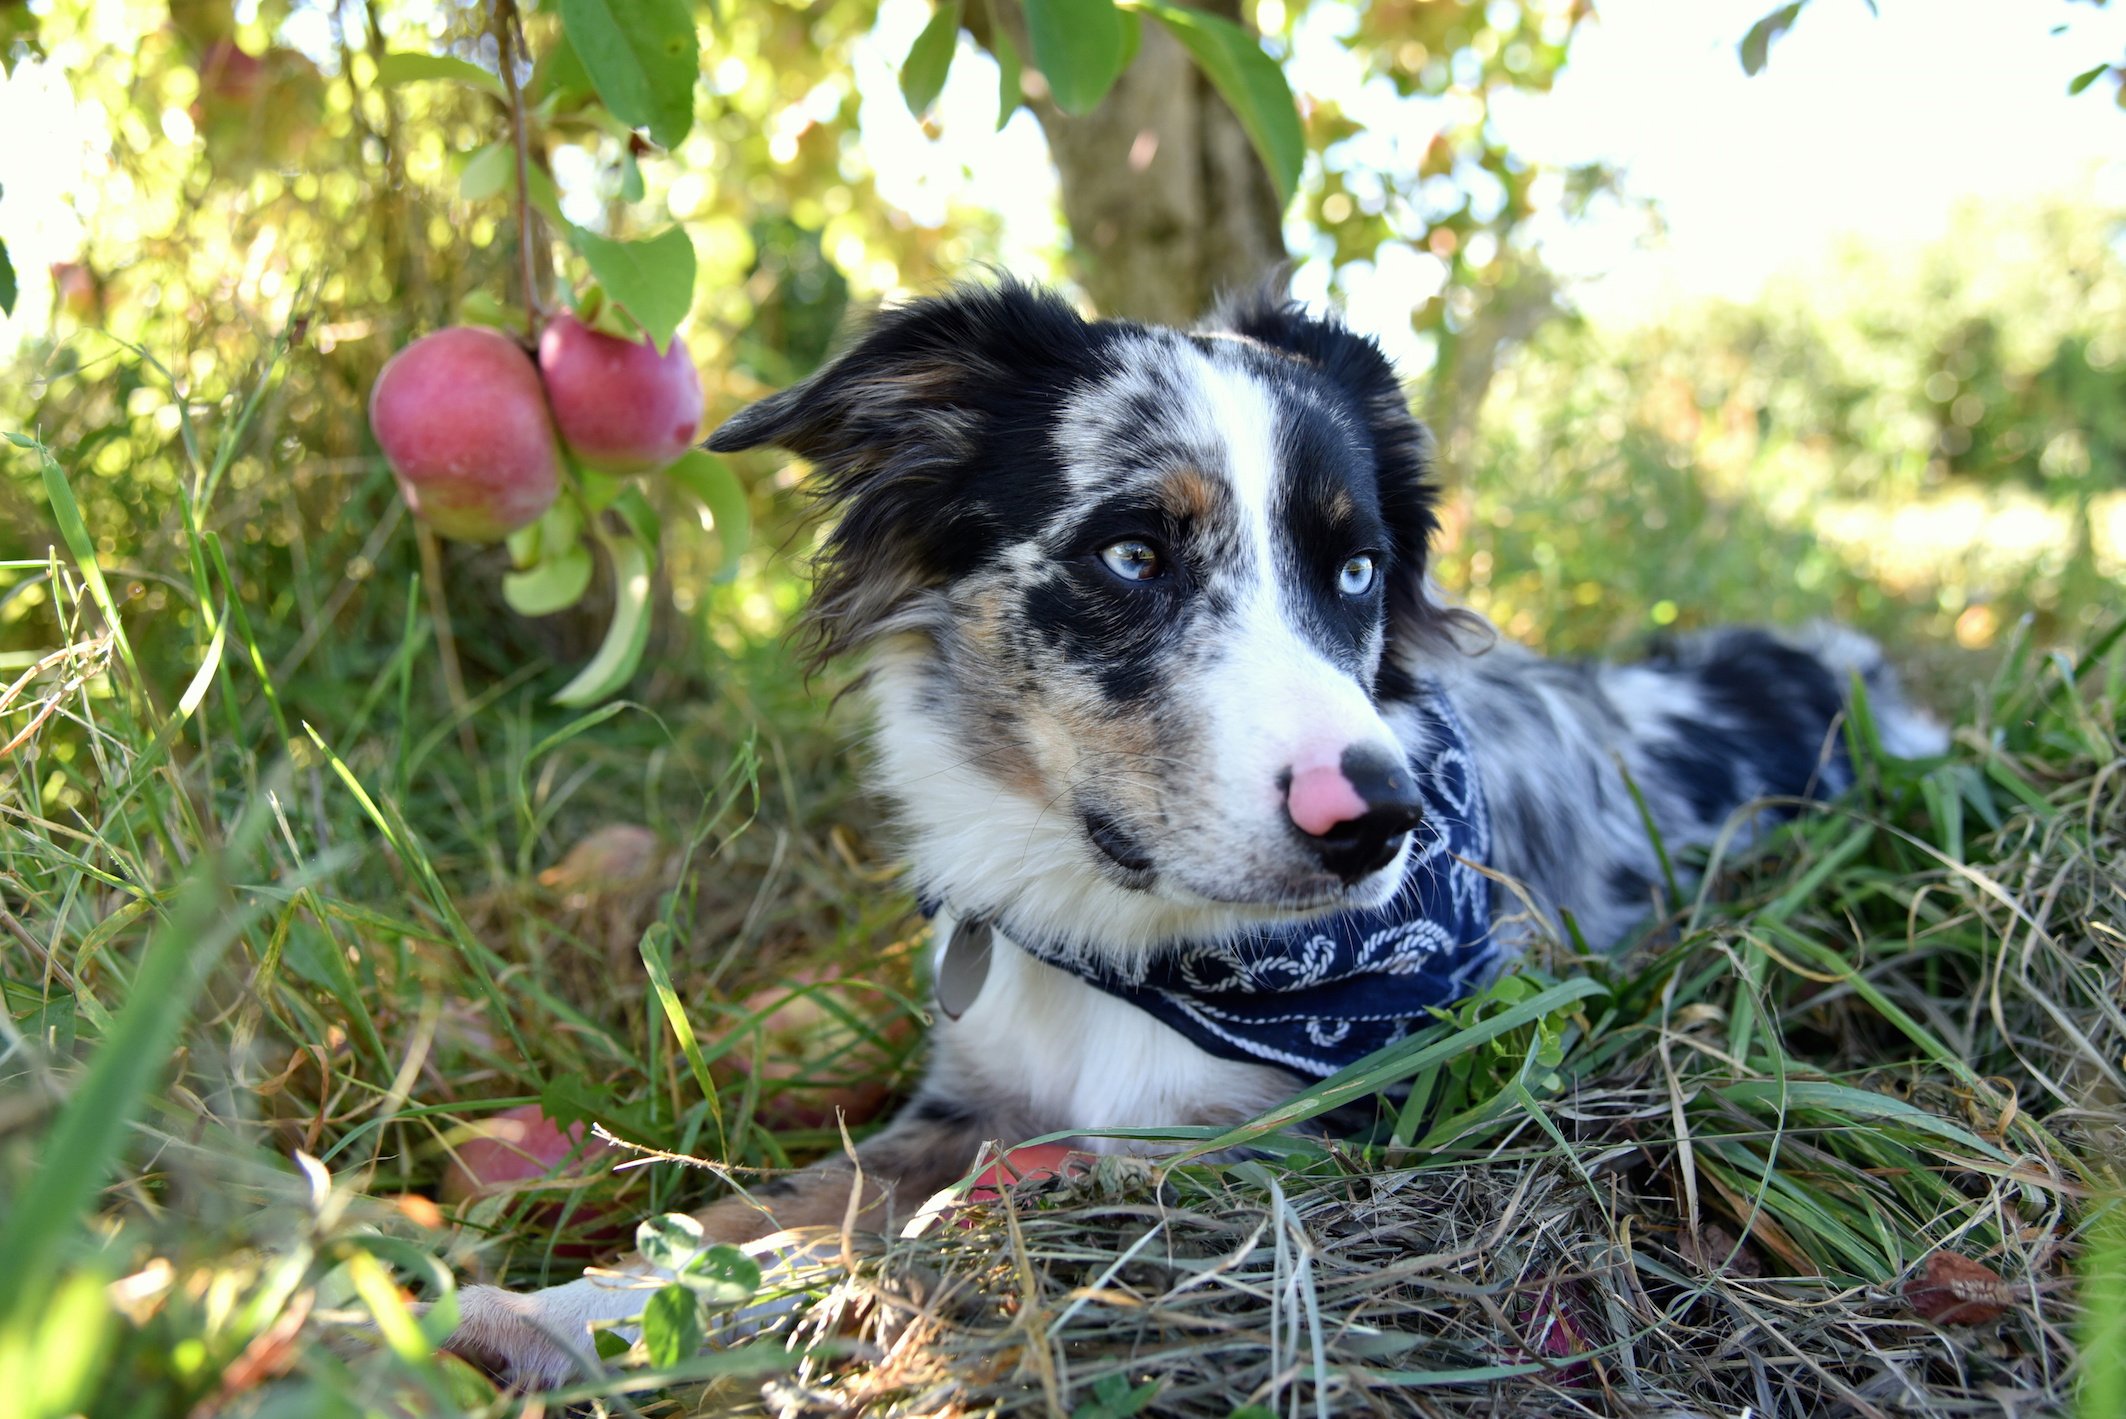 Apple Picking with my dog Upstate New York 2016